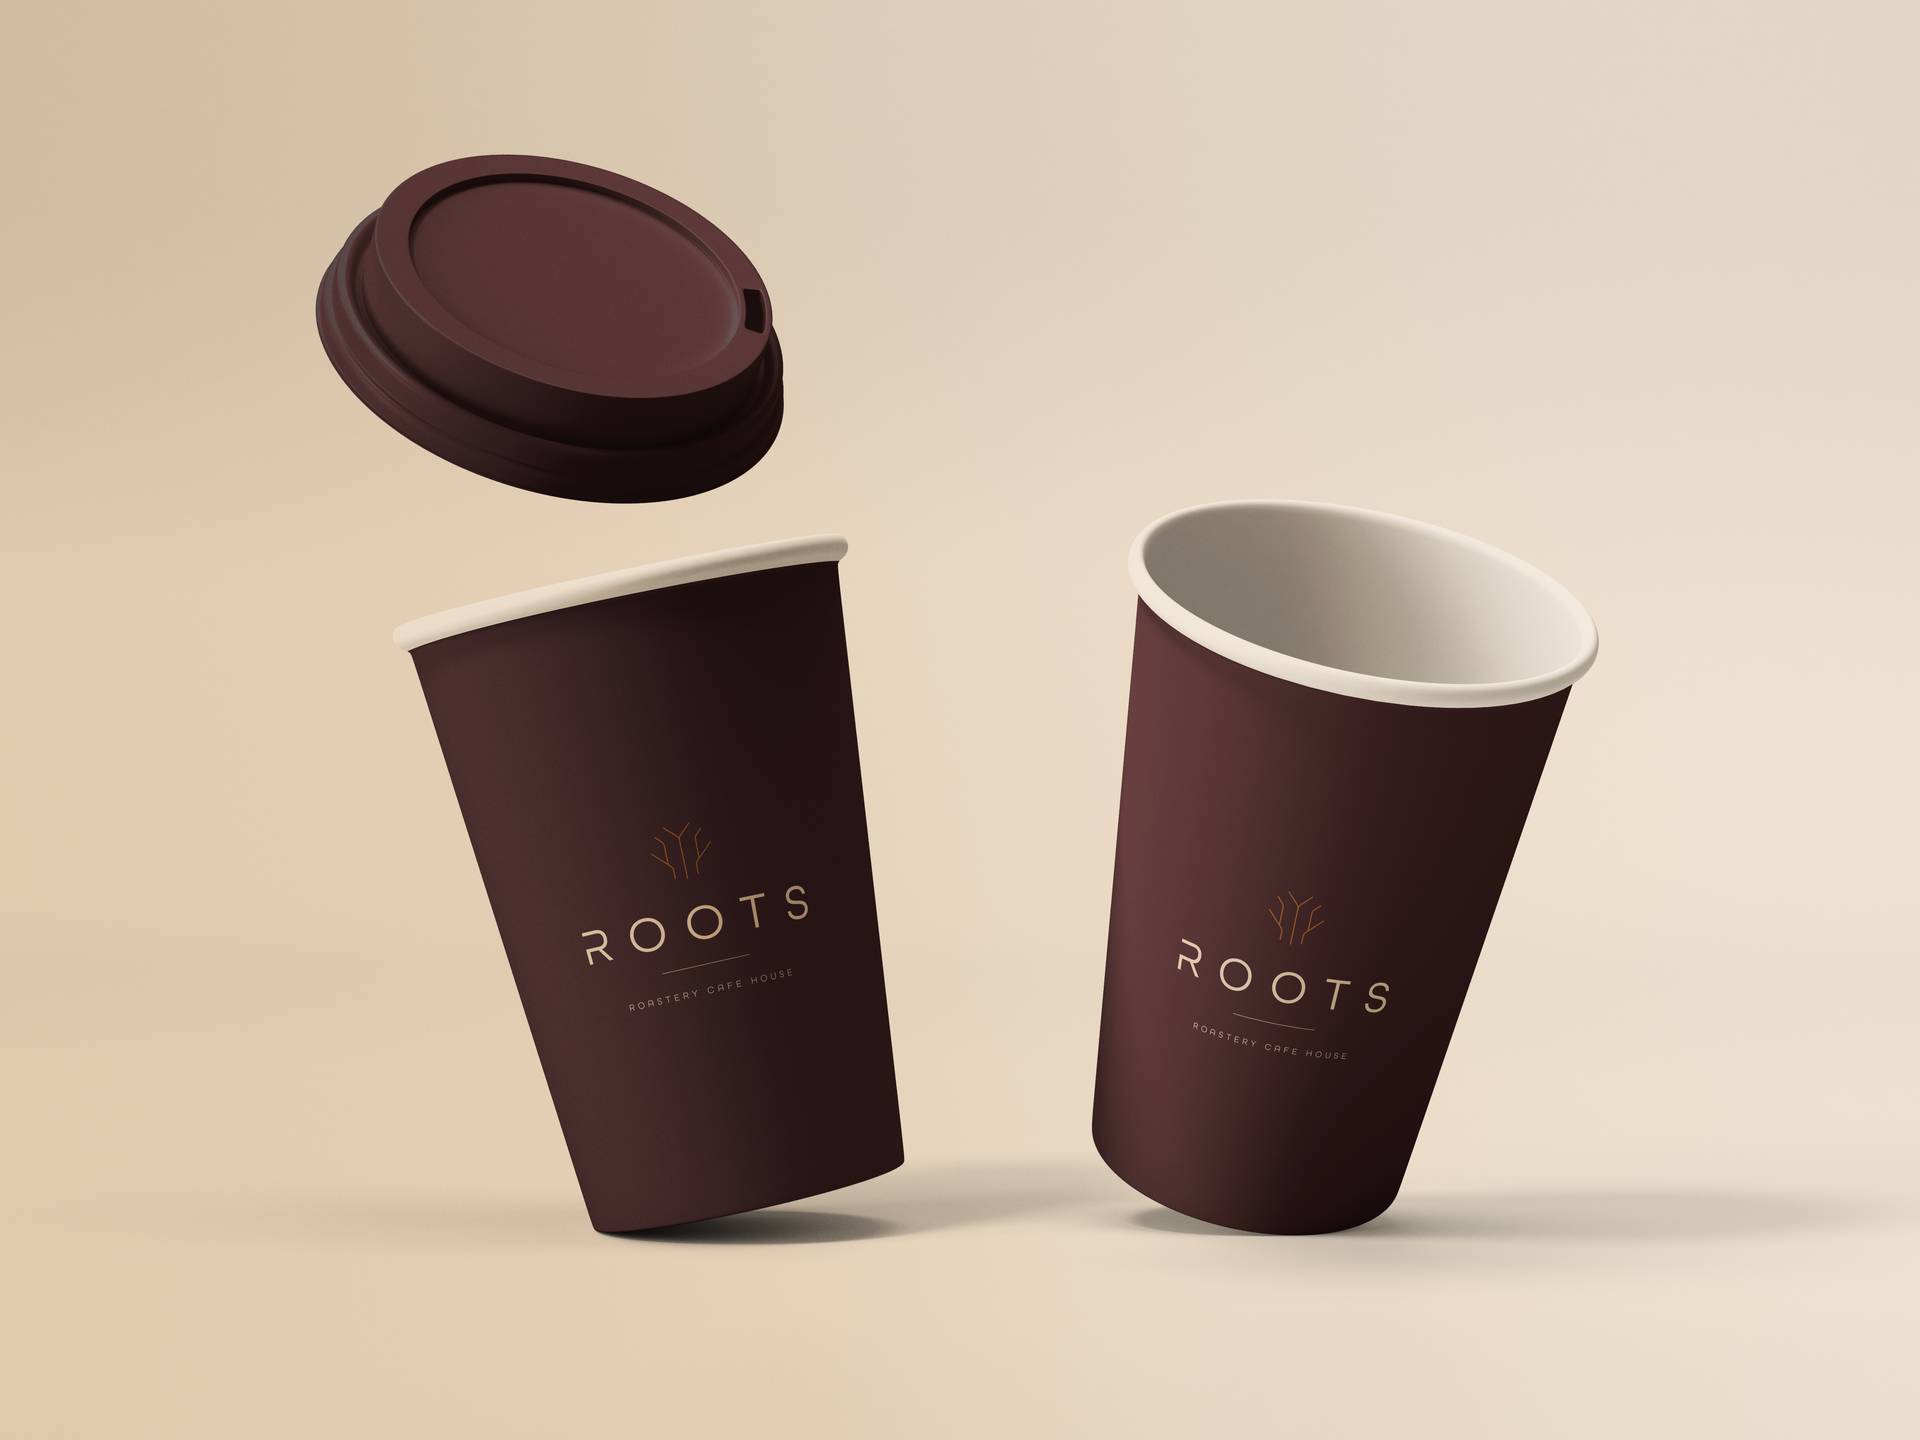 Roots cups